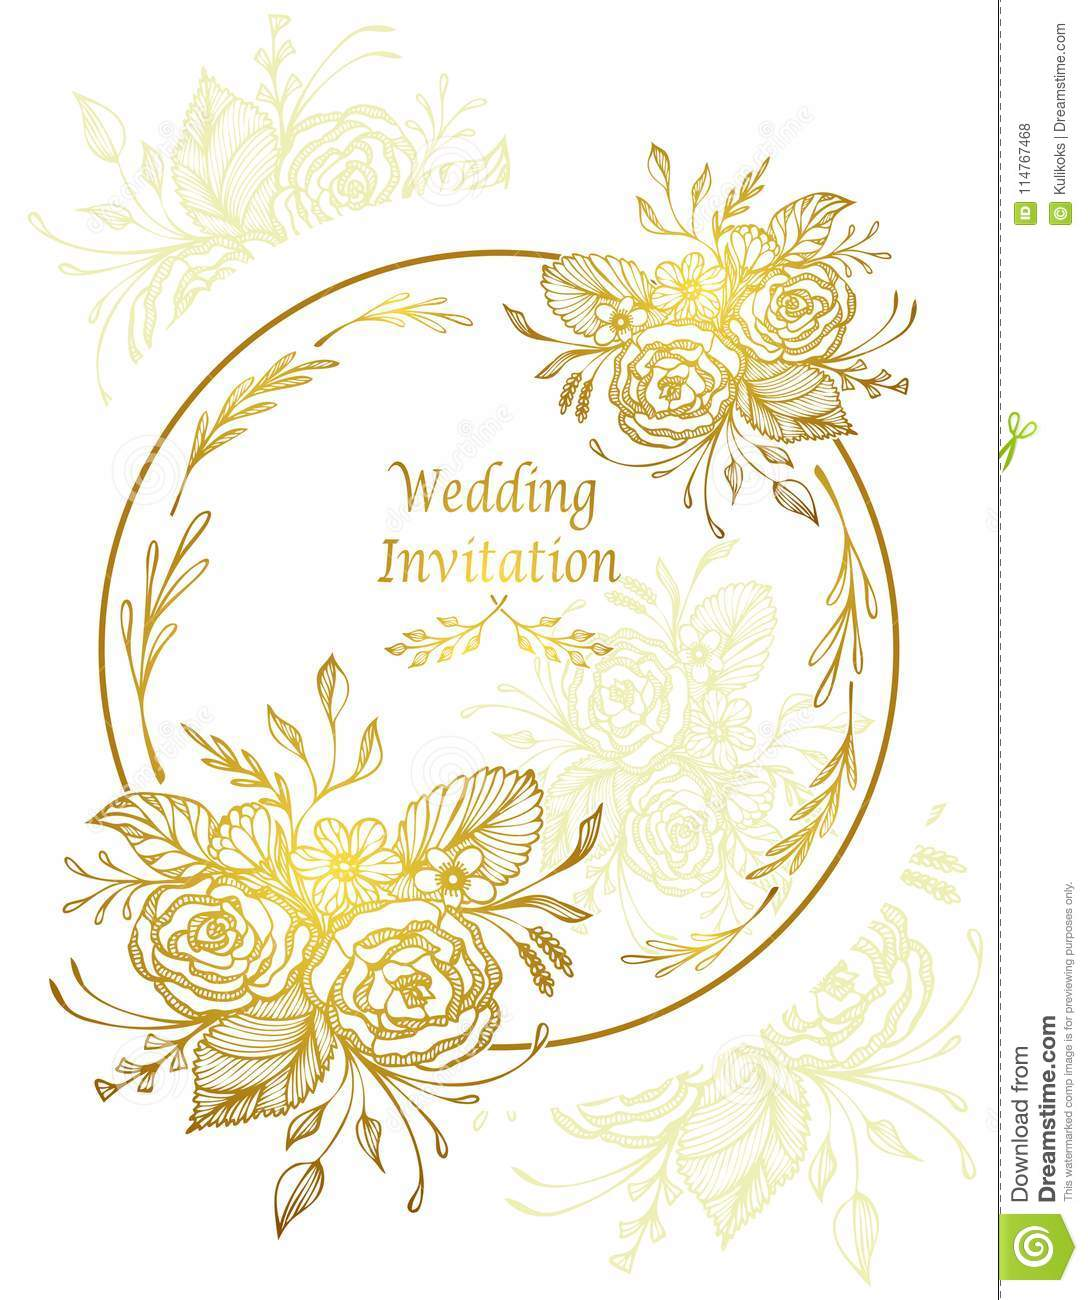 Elegant Wedding Invitation Card With Flowers Bouquet Gold On